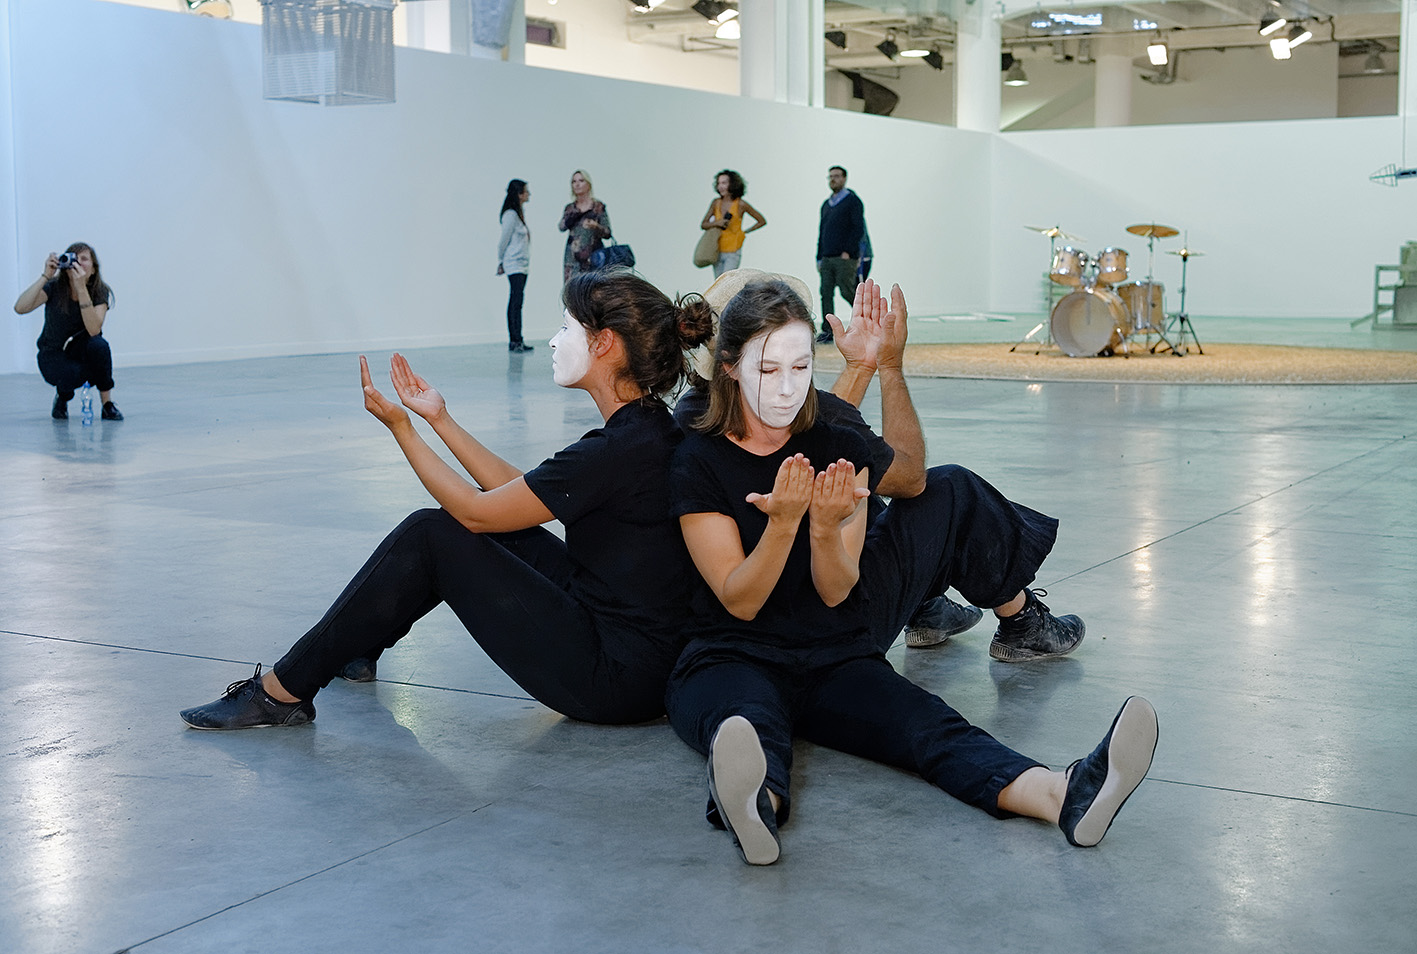 Anthéa Hamilton, Kar-a-sutra, 2015. Photo: © Blaise Adilon.